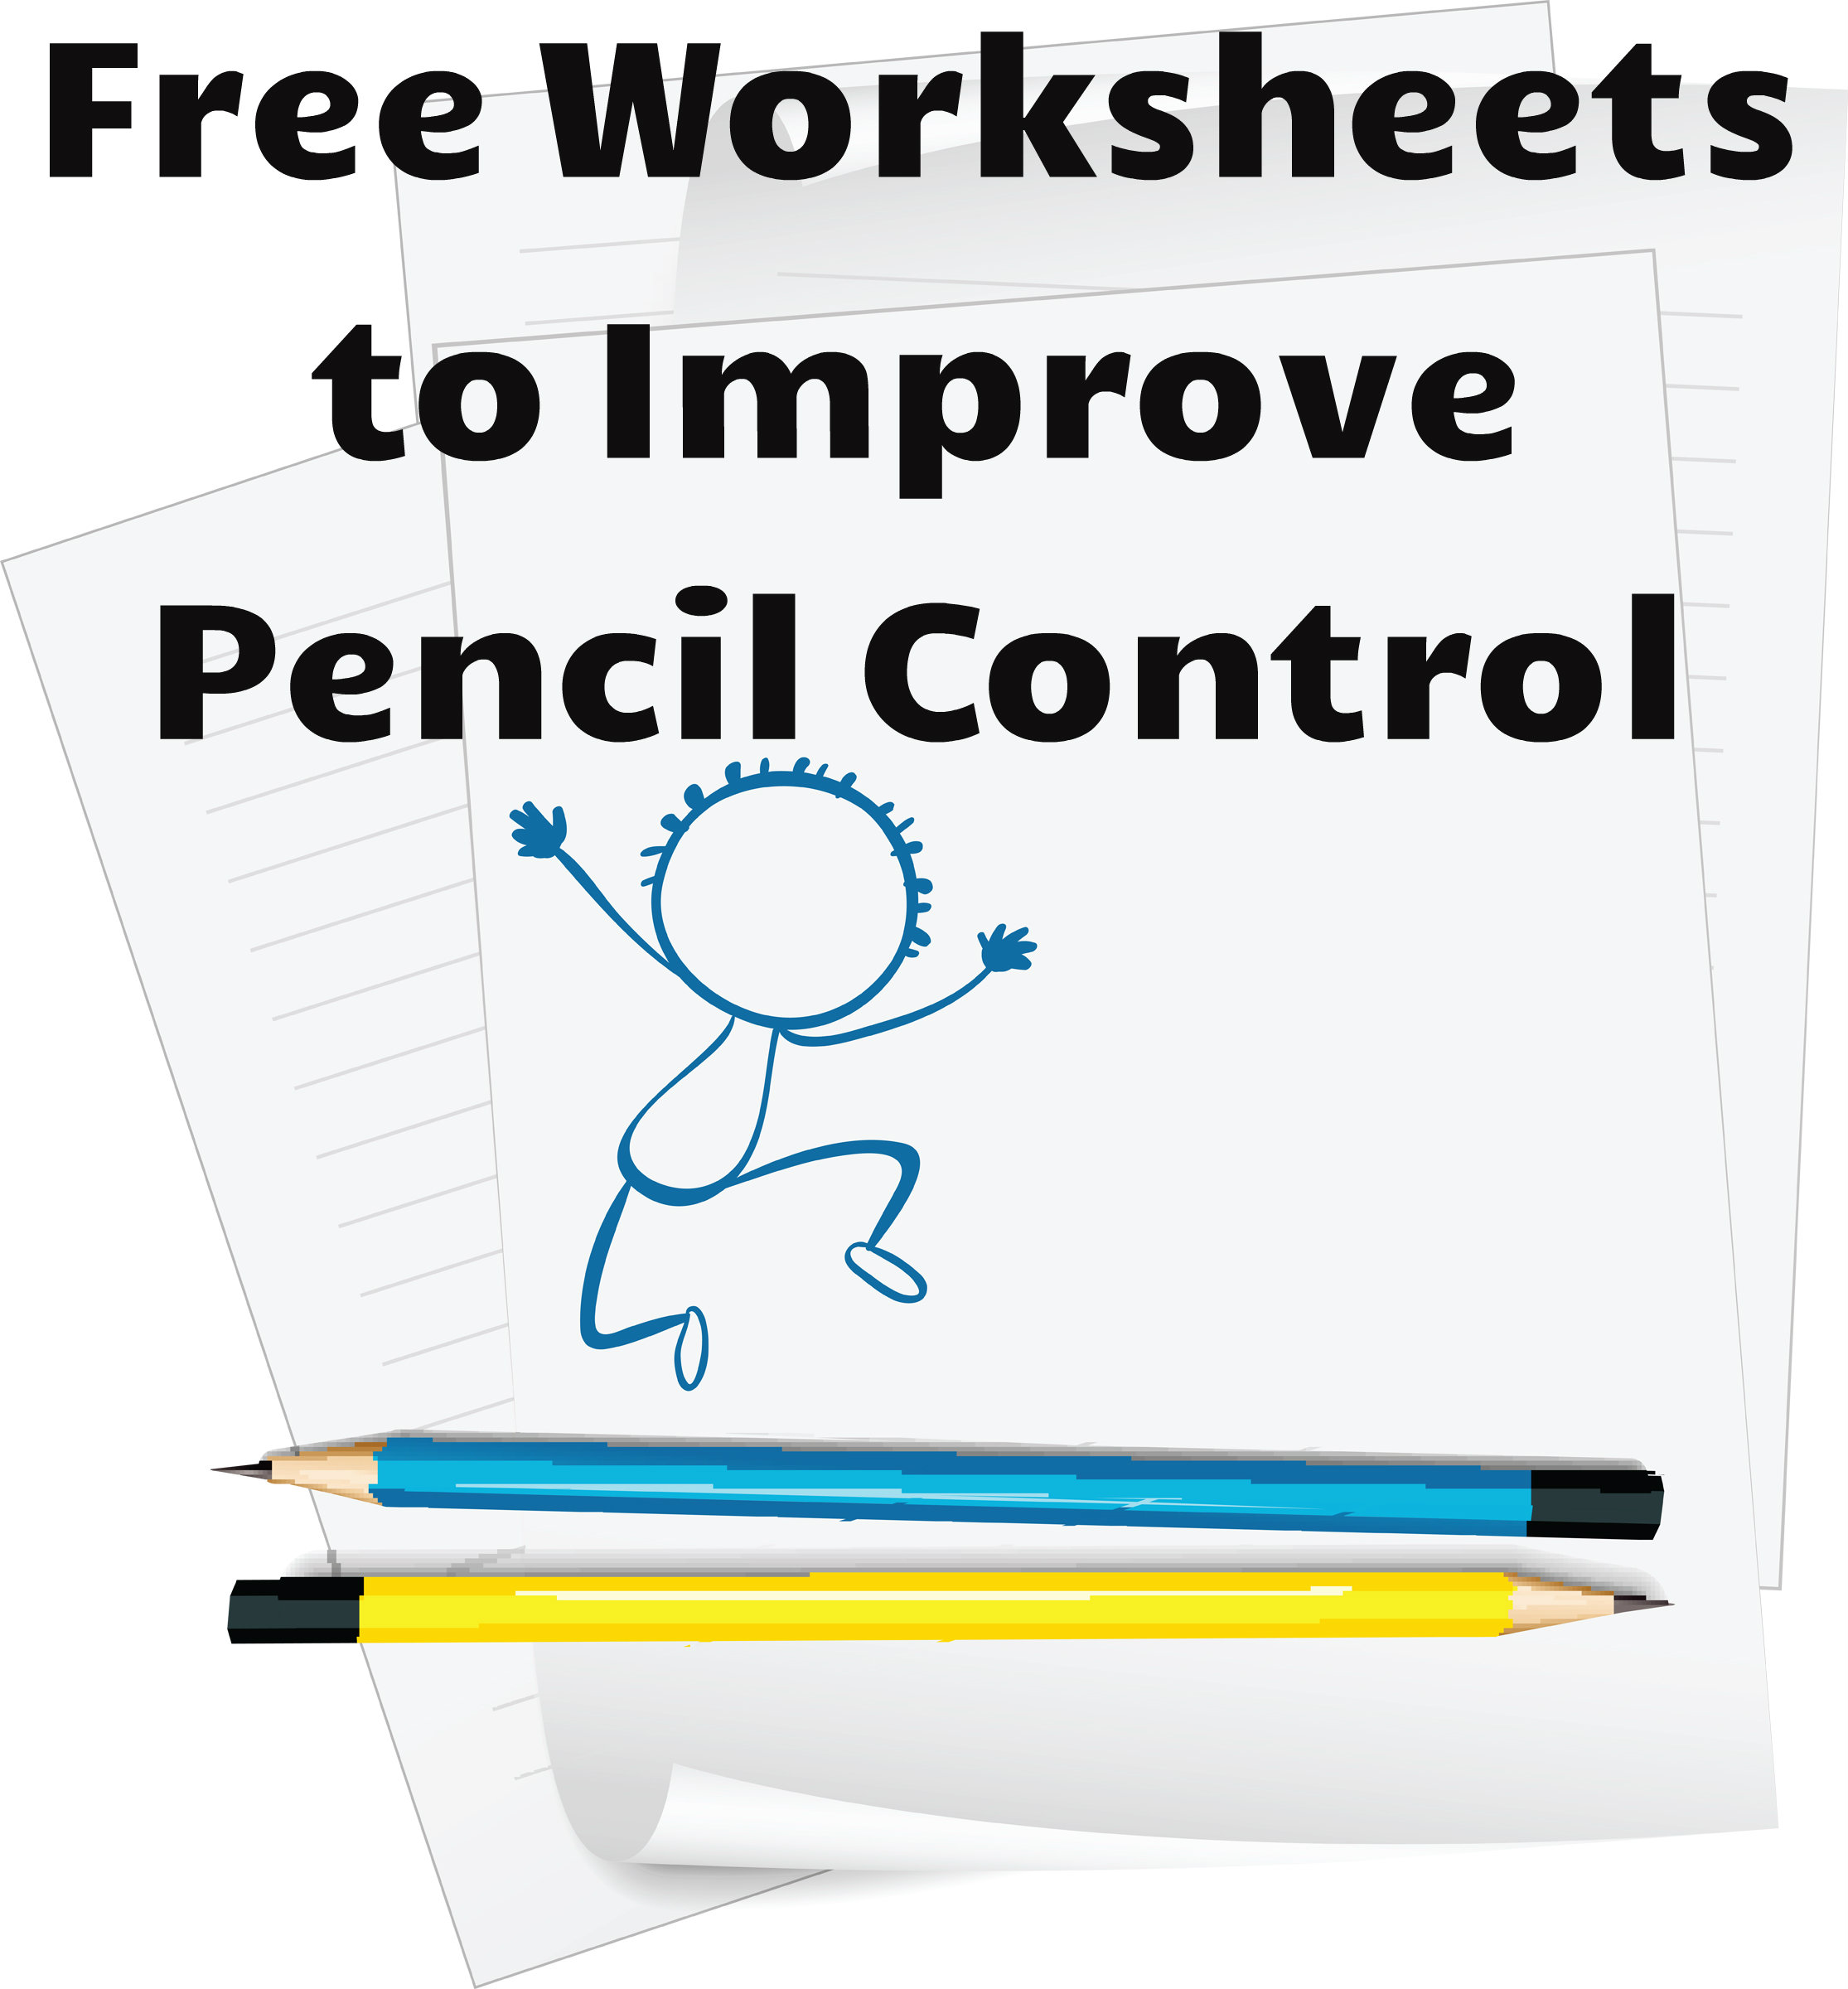 Worksheets Fine Motor Skills Worksheets fine motor skills practice readyteacher com worksheets to develop skills